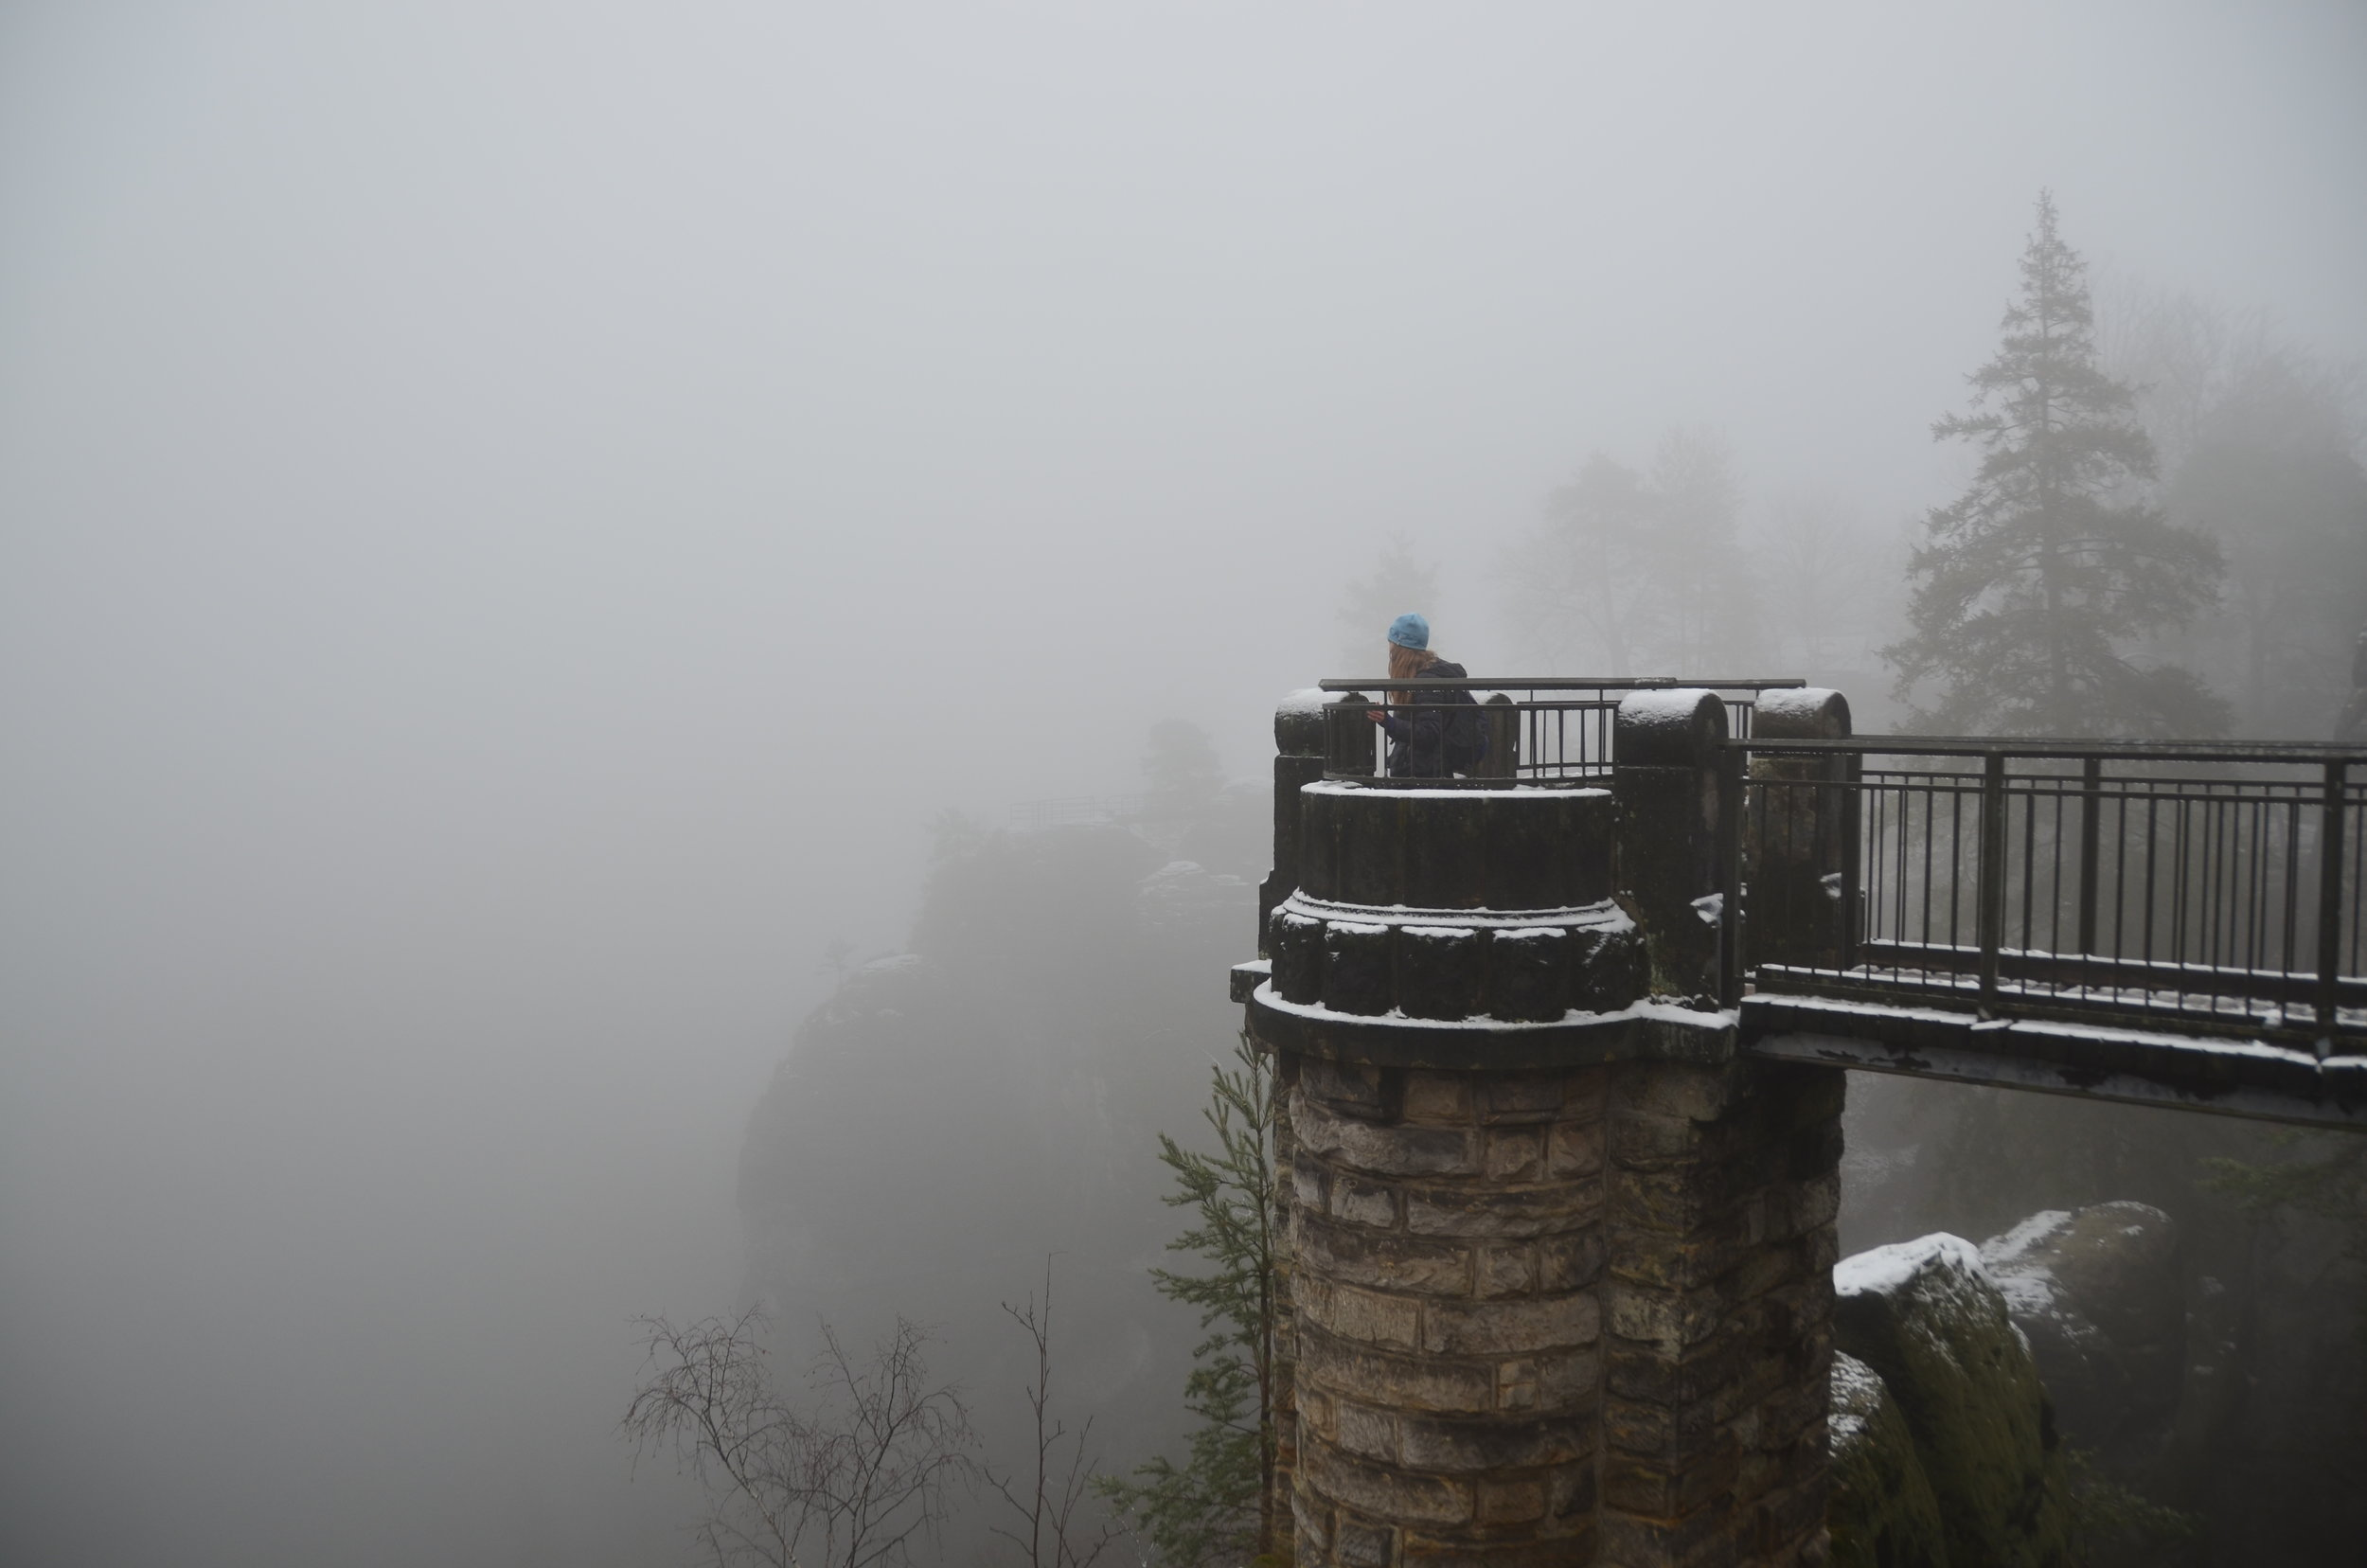 Taking in the views (or the mist!)